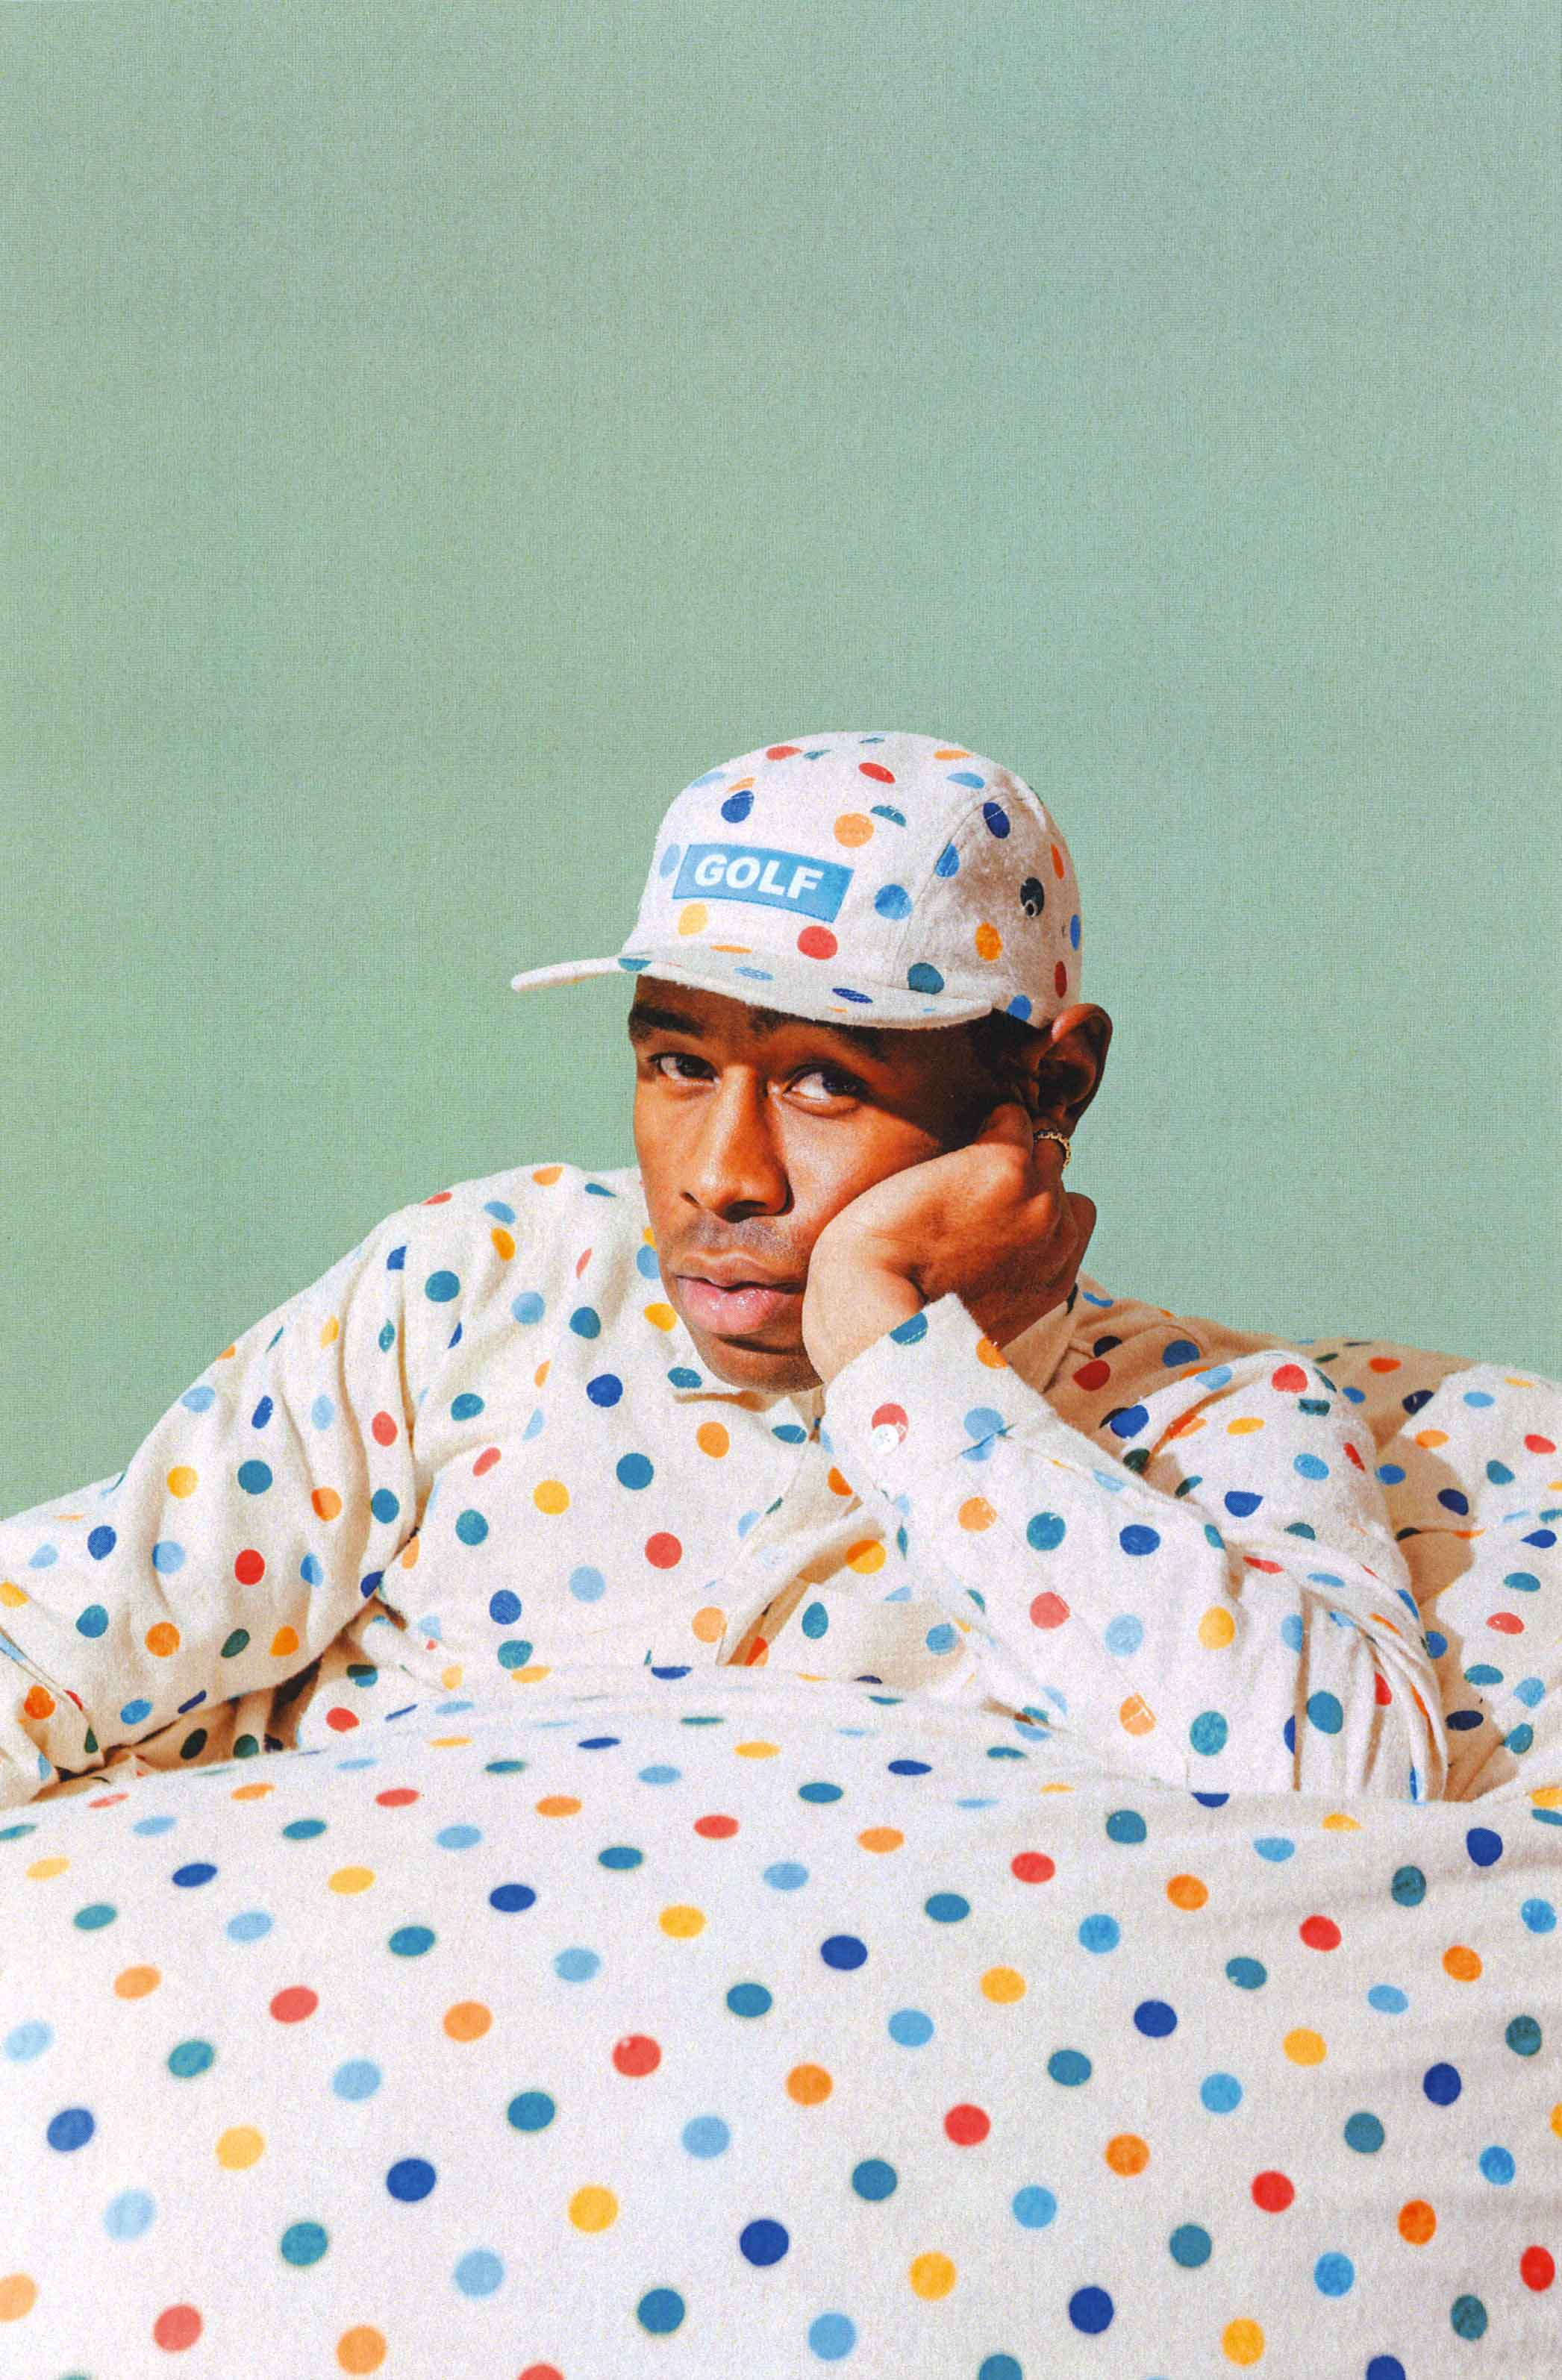 9ab5511631c1 Wonderbread Wolf Gang Tyler the Creature Retro Odd Future Fall Winter  Collection 1990s 1980s